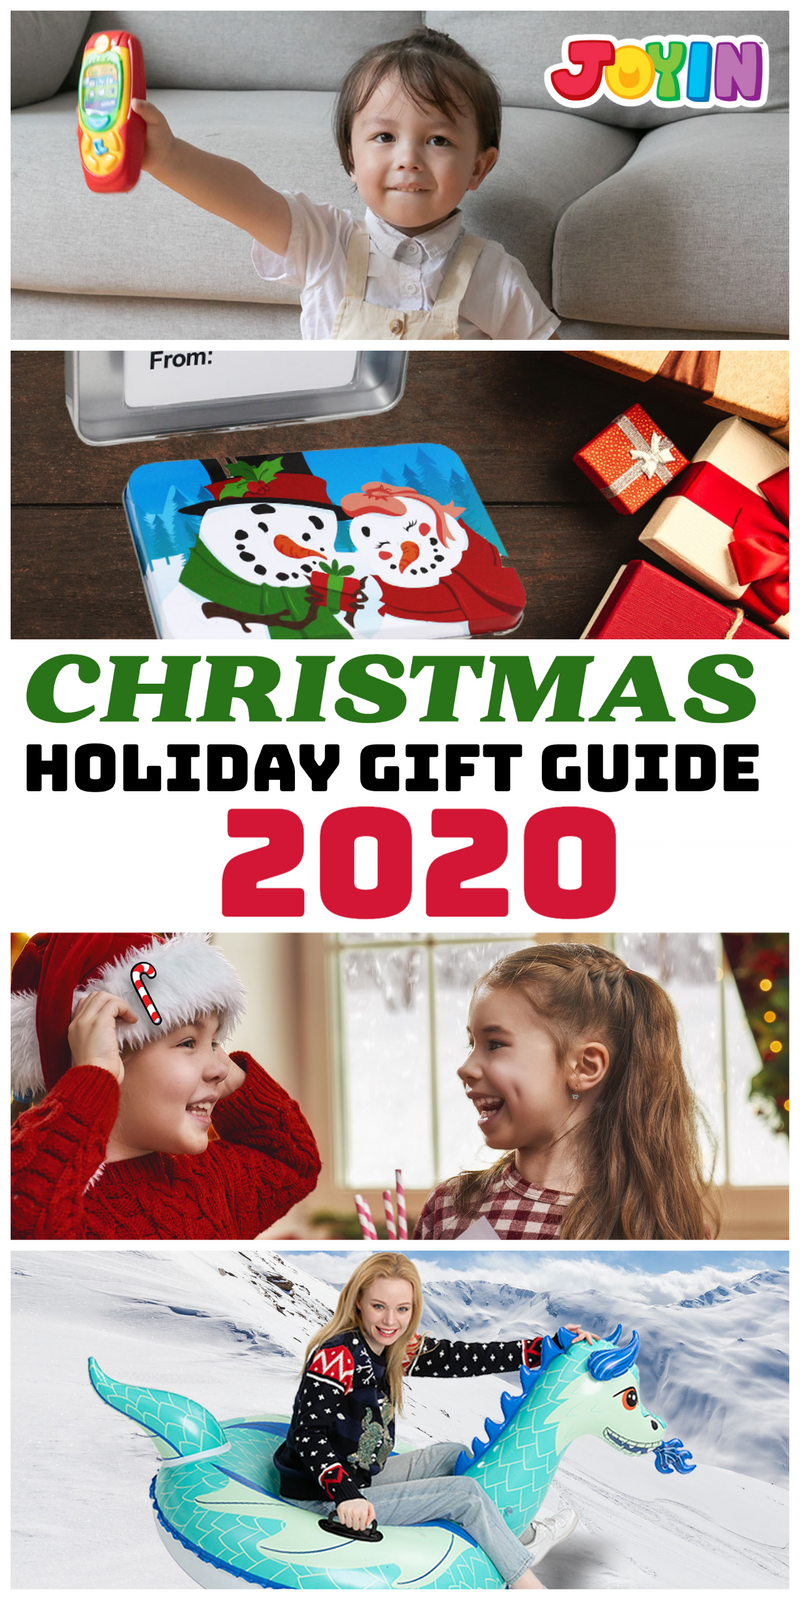 Holiday Gift Guide 2020 - JOYIN